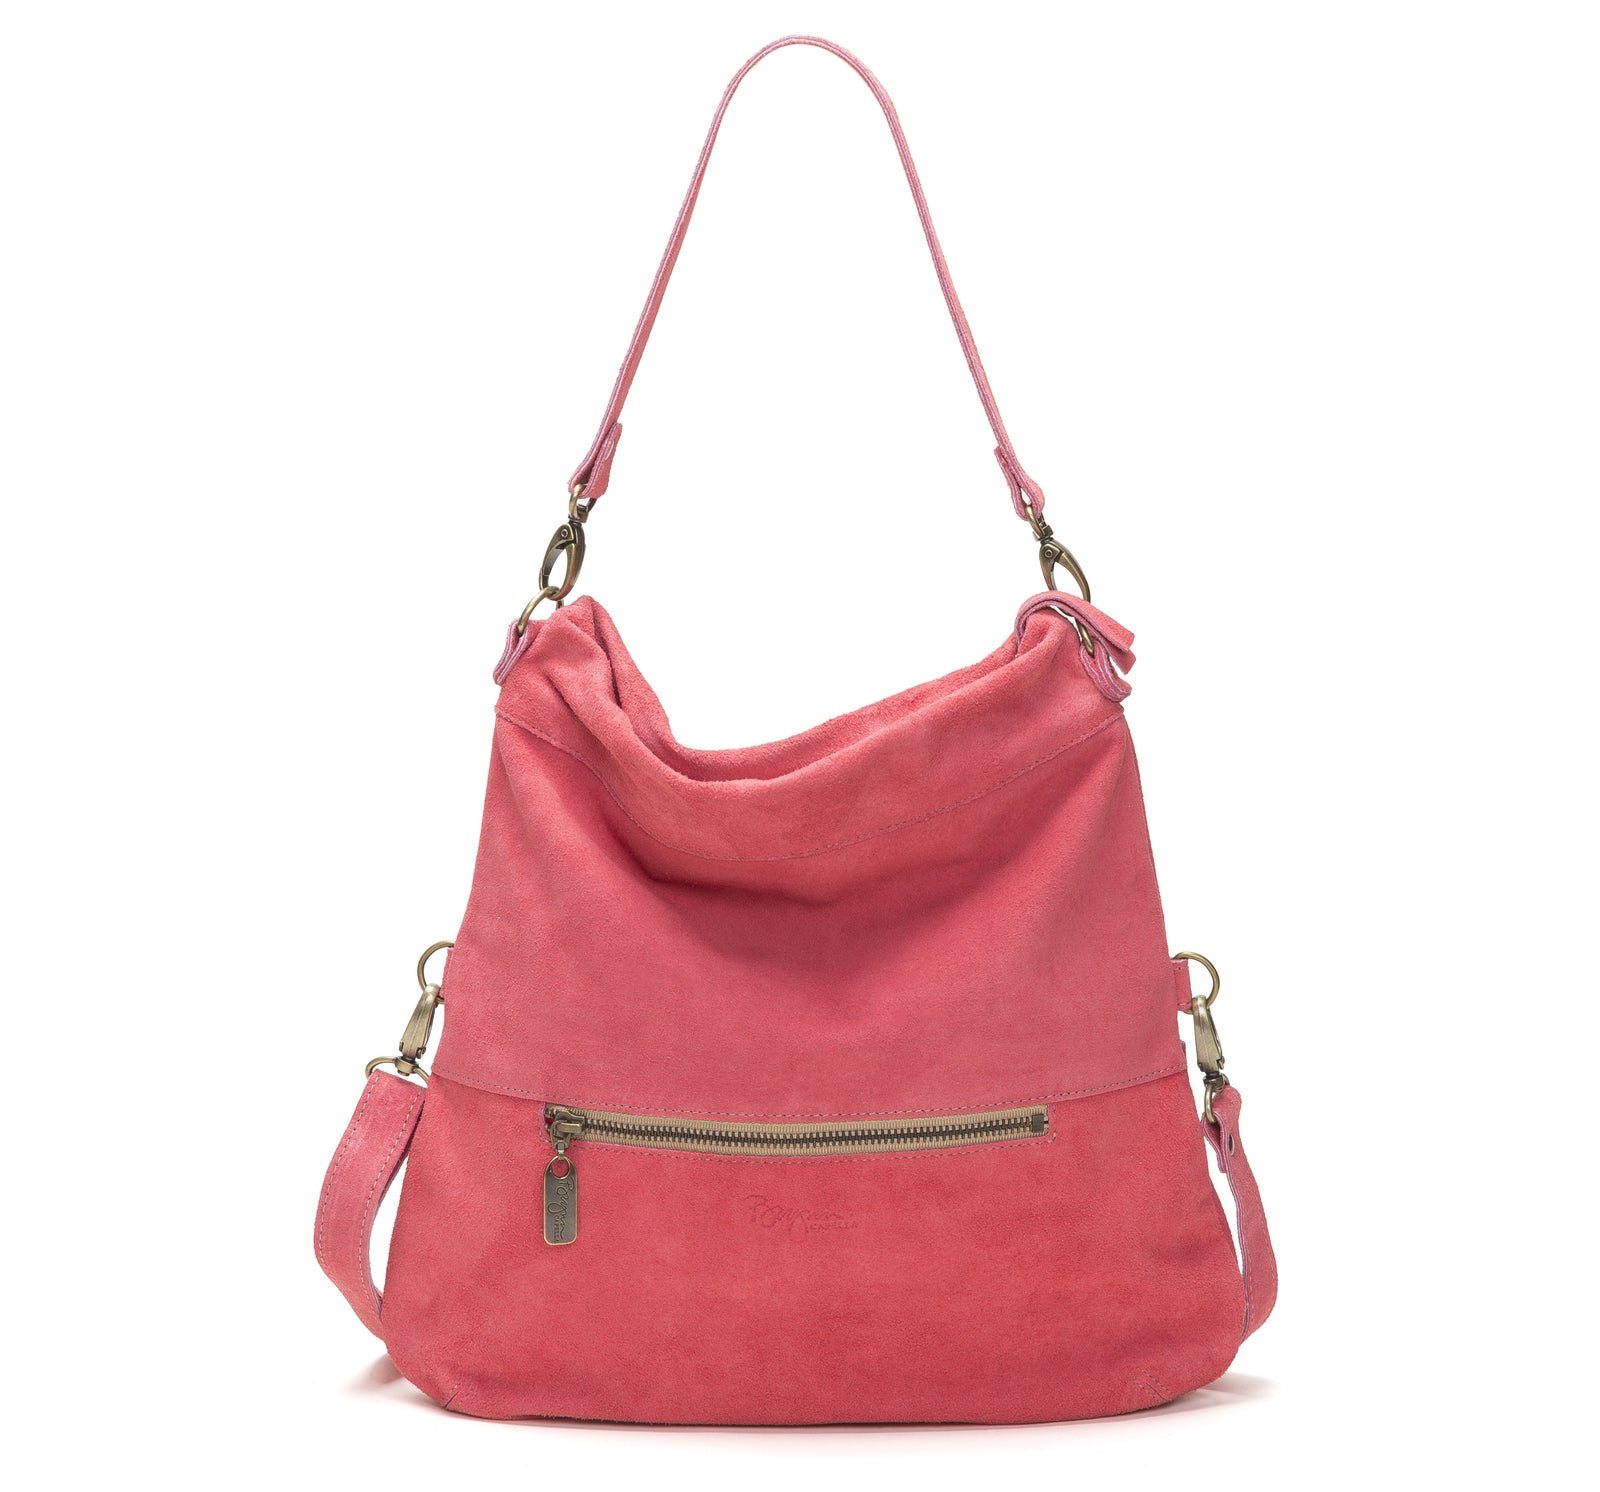 Mini-Lauren Crossbody - Watermelon - Brynn Capella, Medium Crossbody